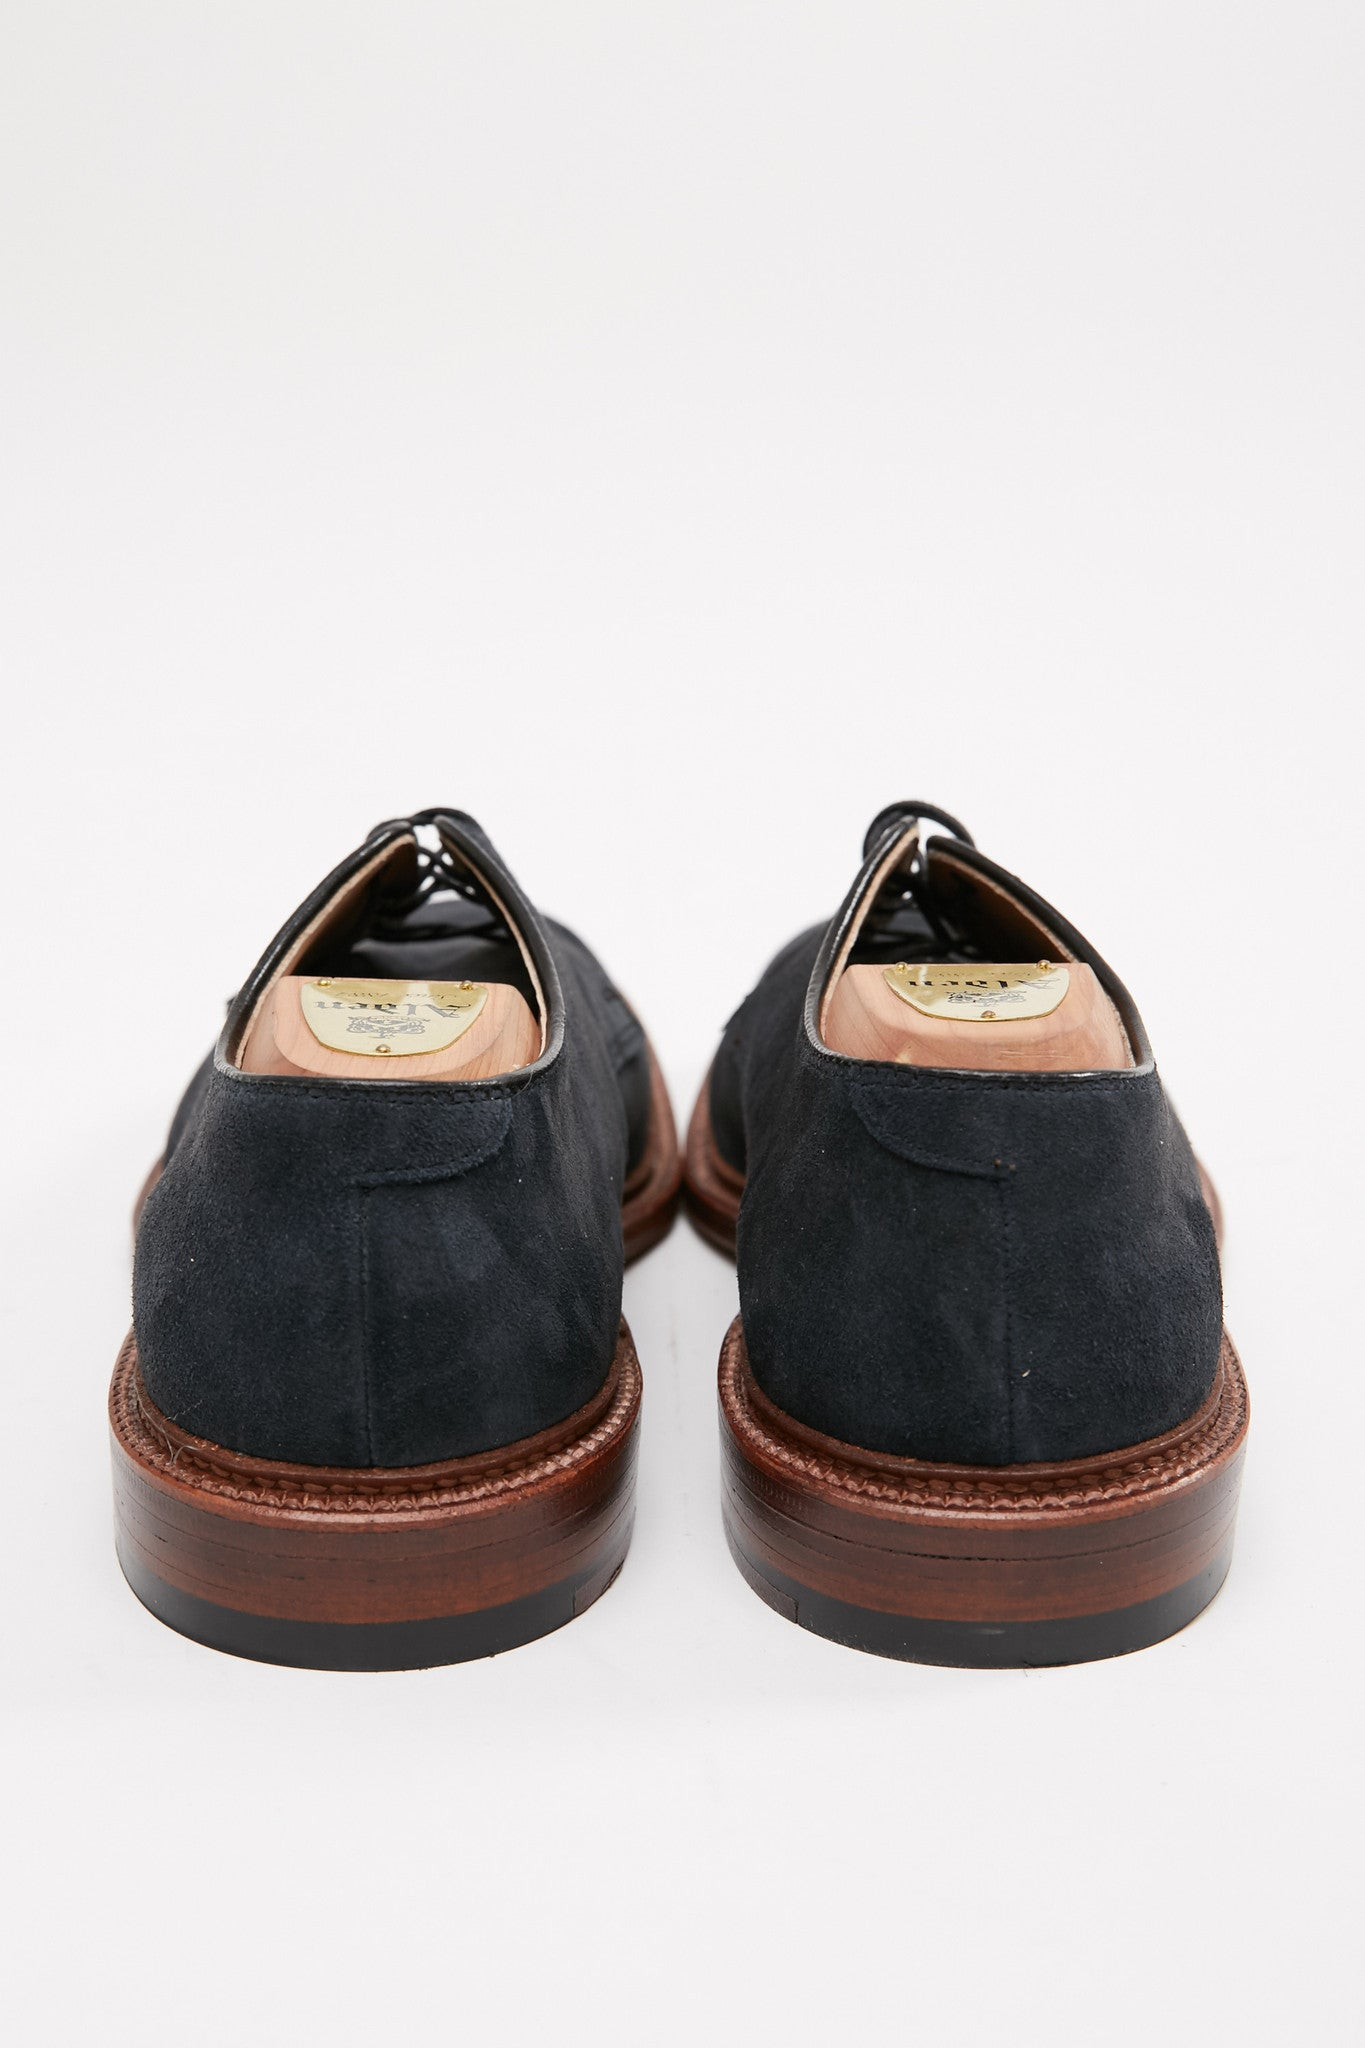 Alden Plain Toe Blucher Navy Suede #29331F